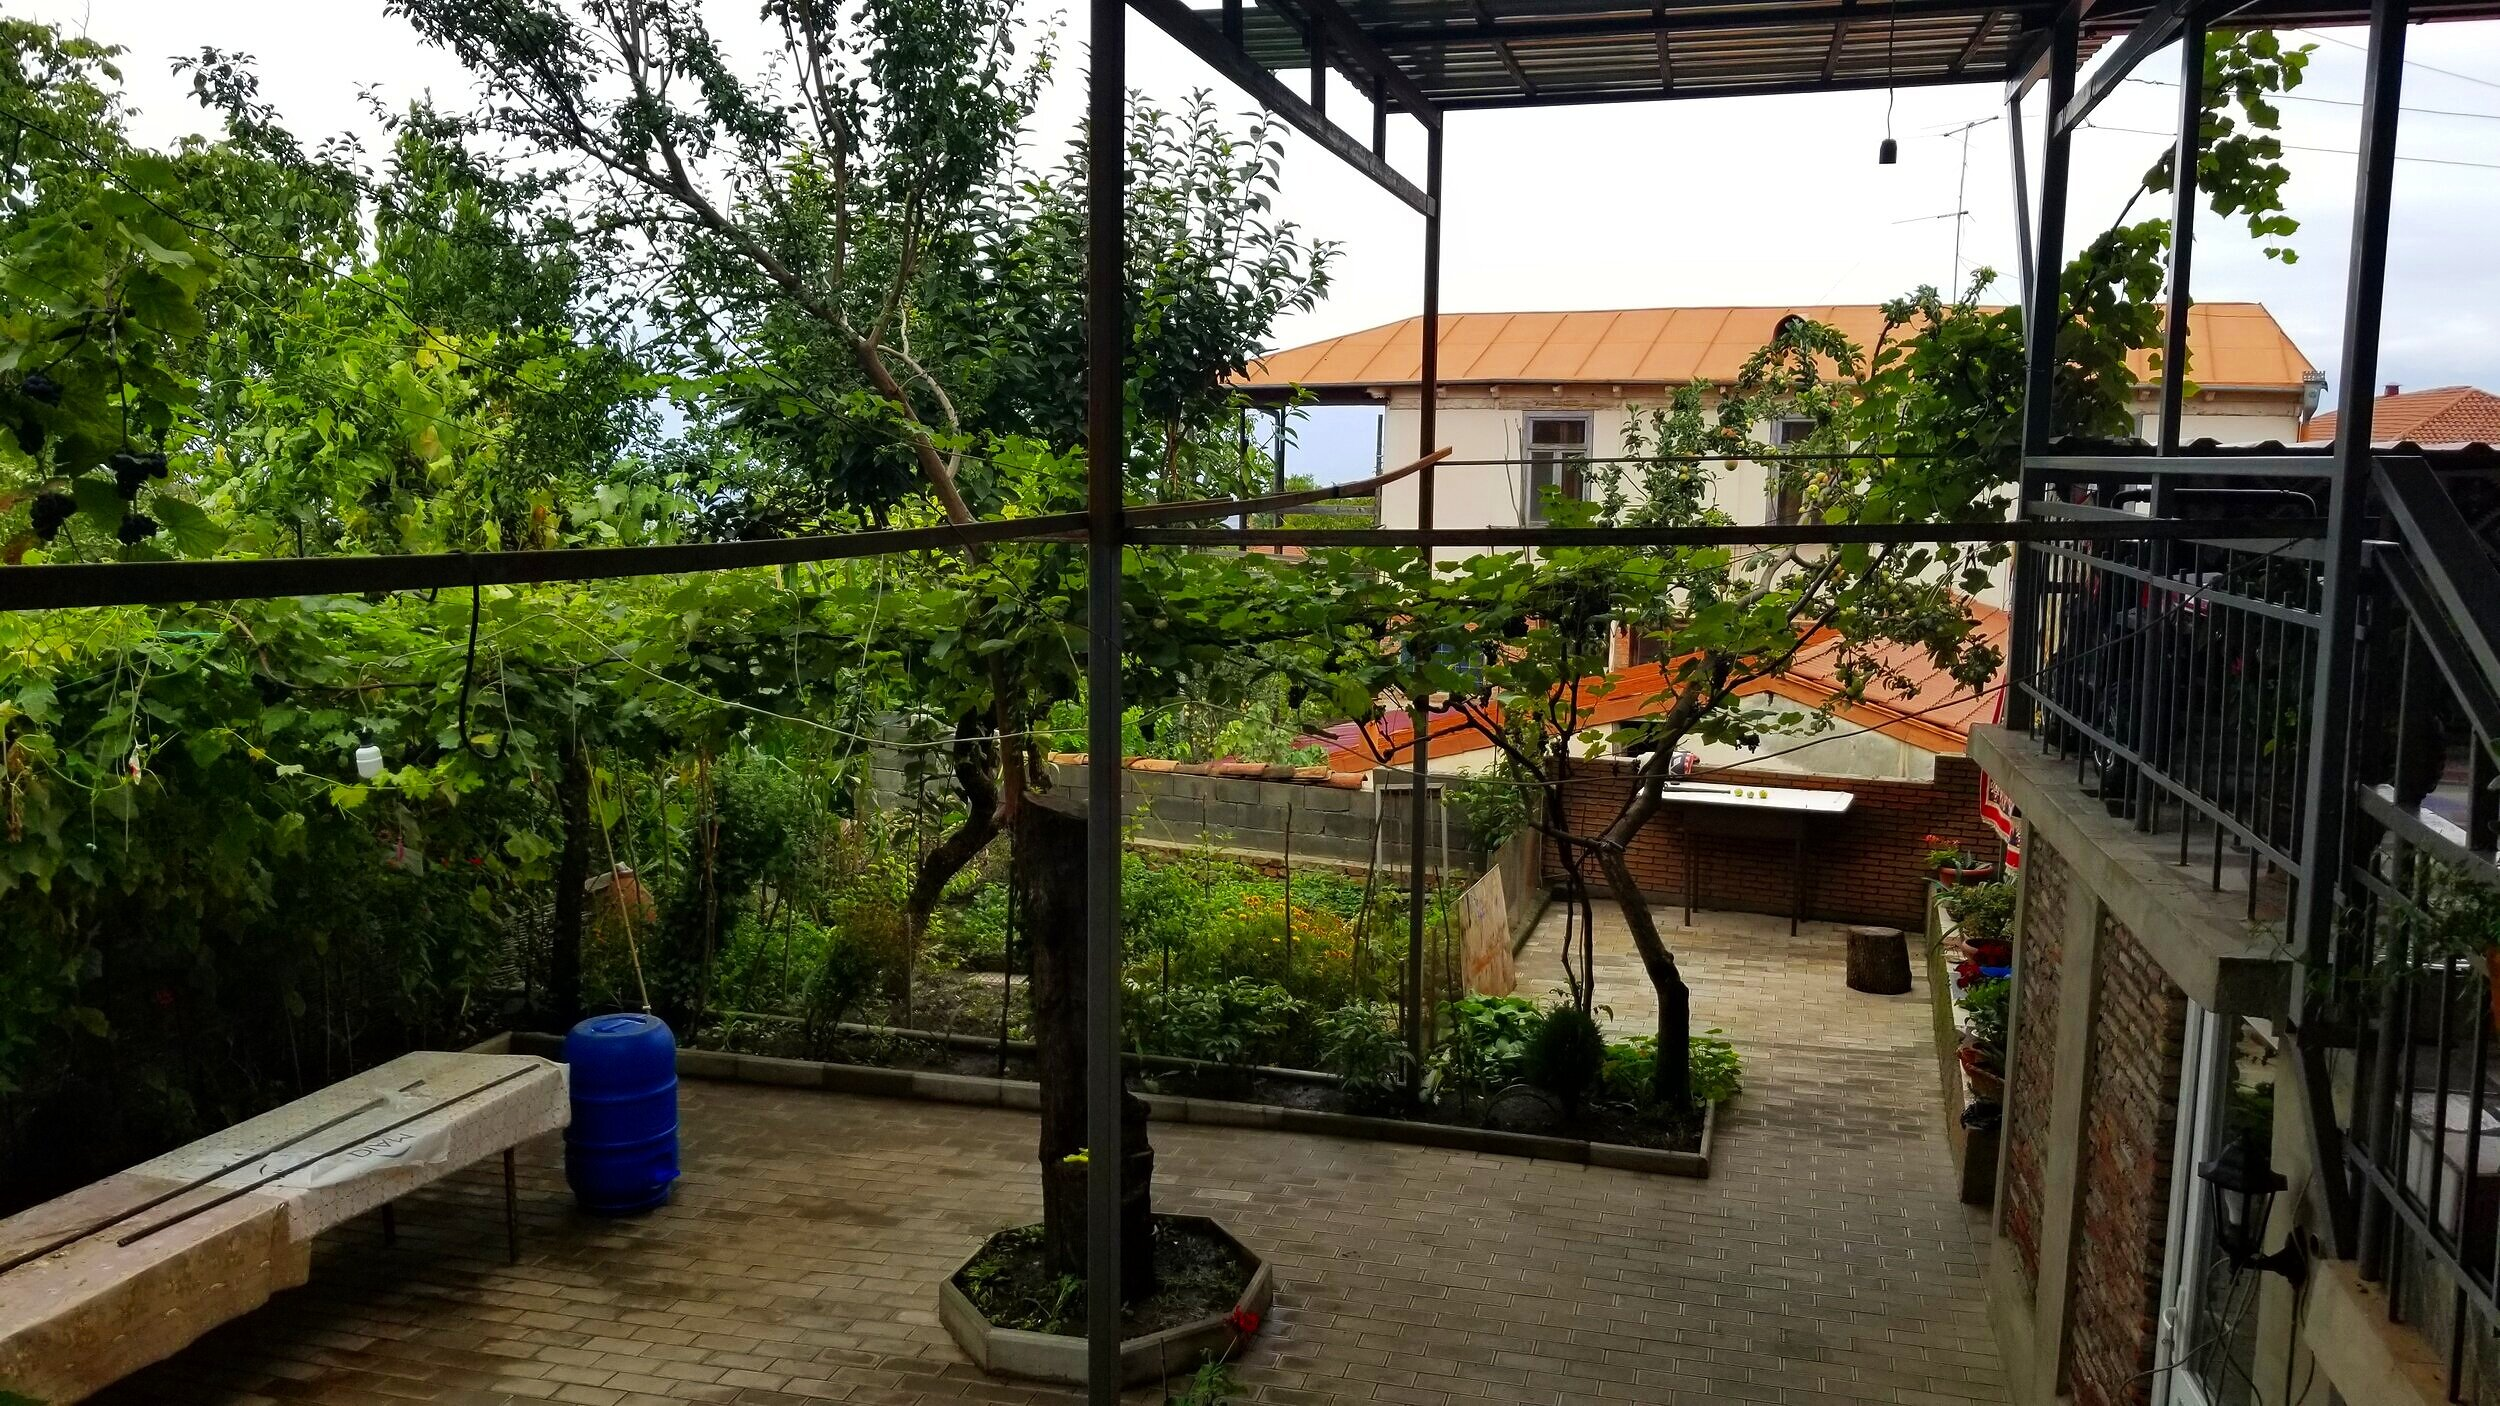 Loza's Guesthouse